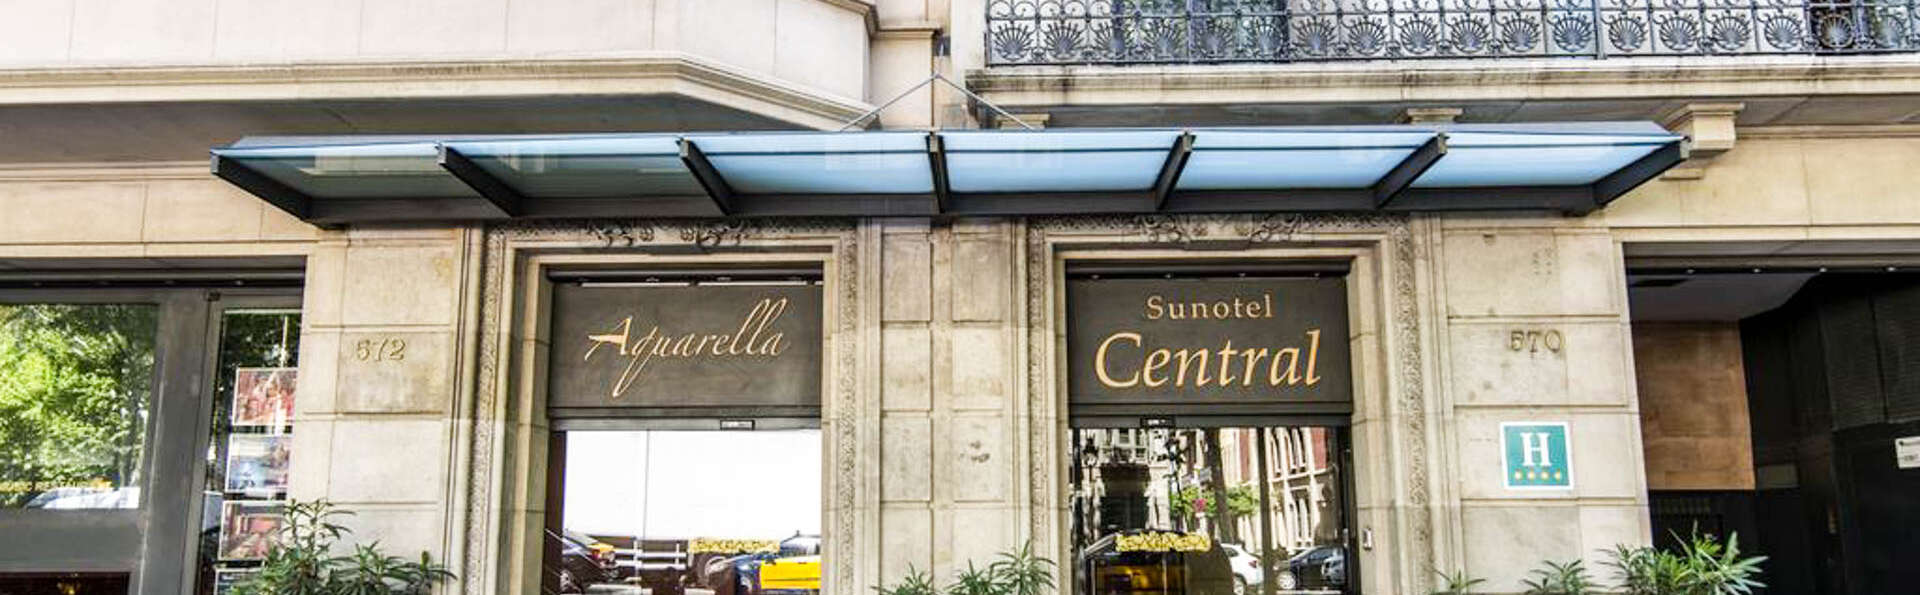 Sunotel Central - EDIT_WEB_FRONT.jpg